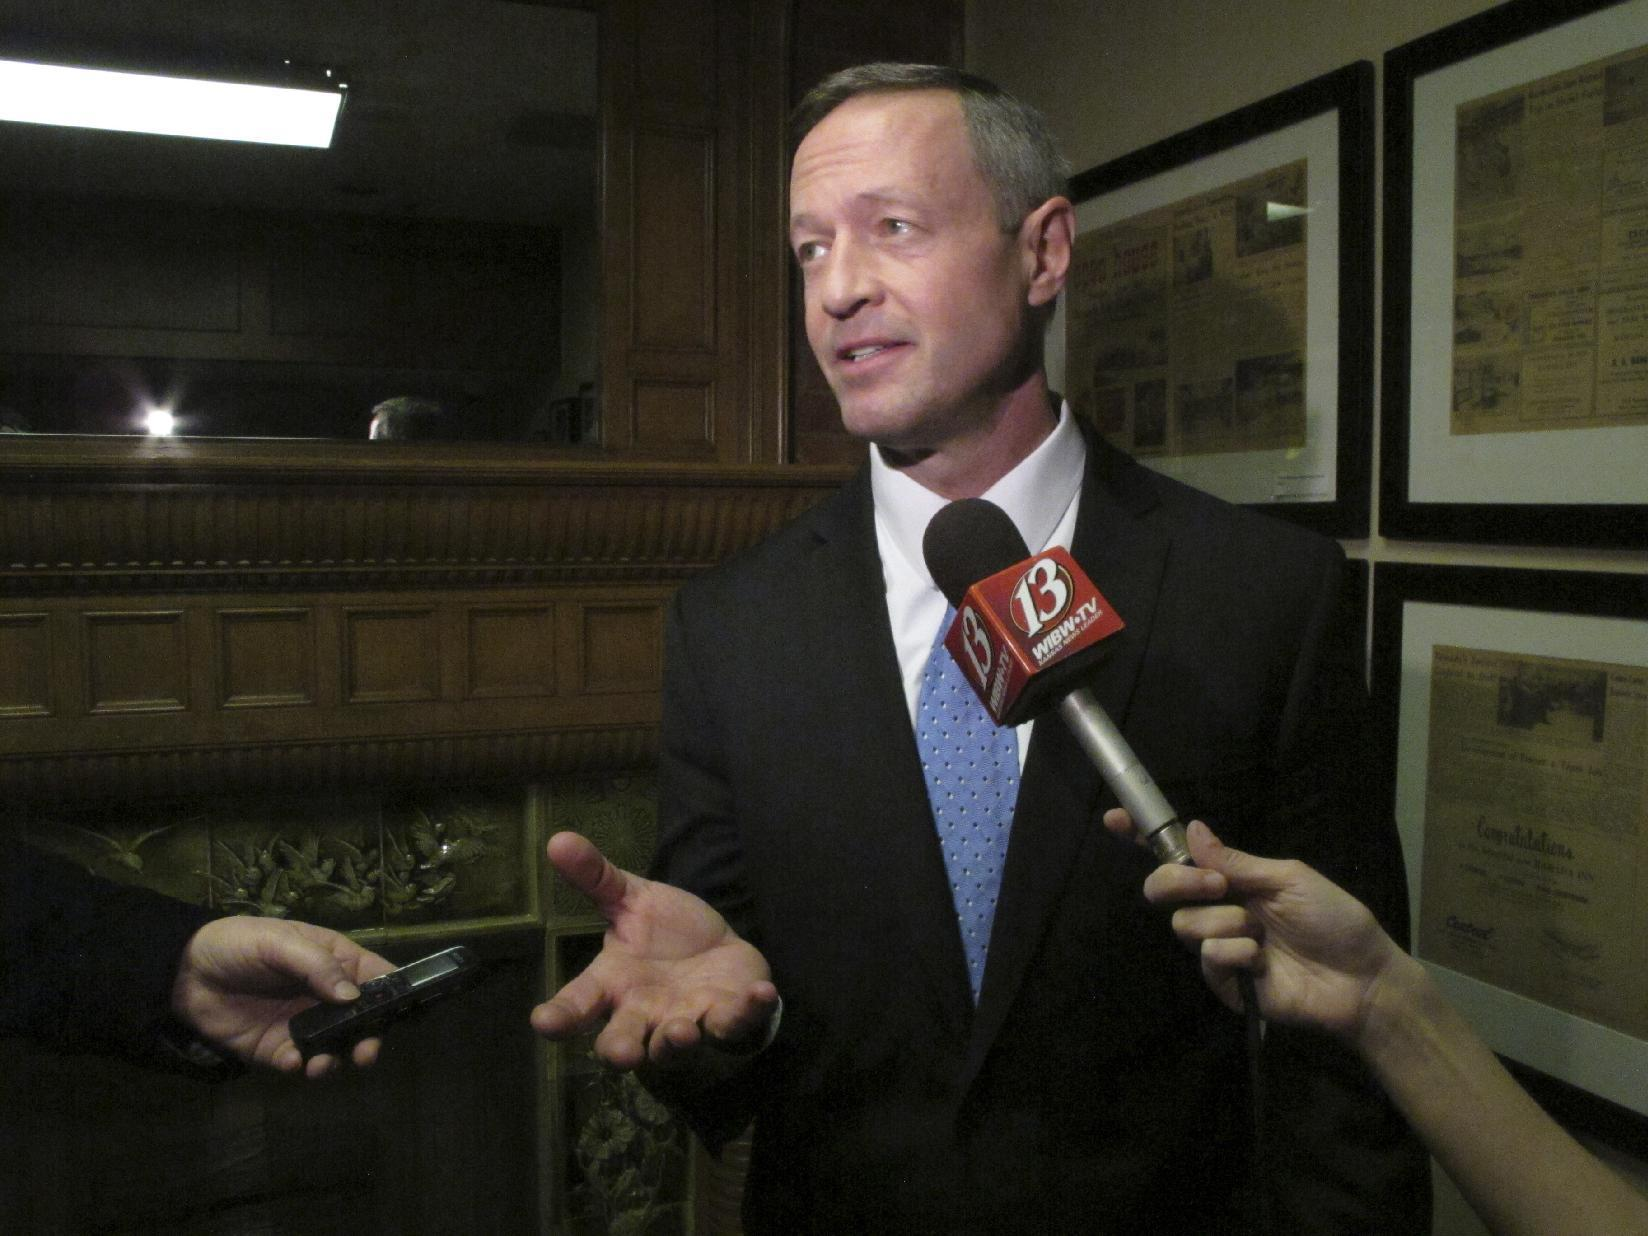 O'Malley's record as Baltimore mayor under scrutiny